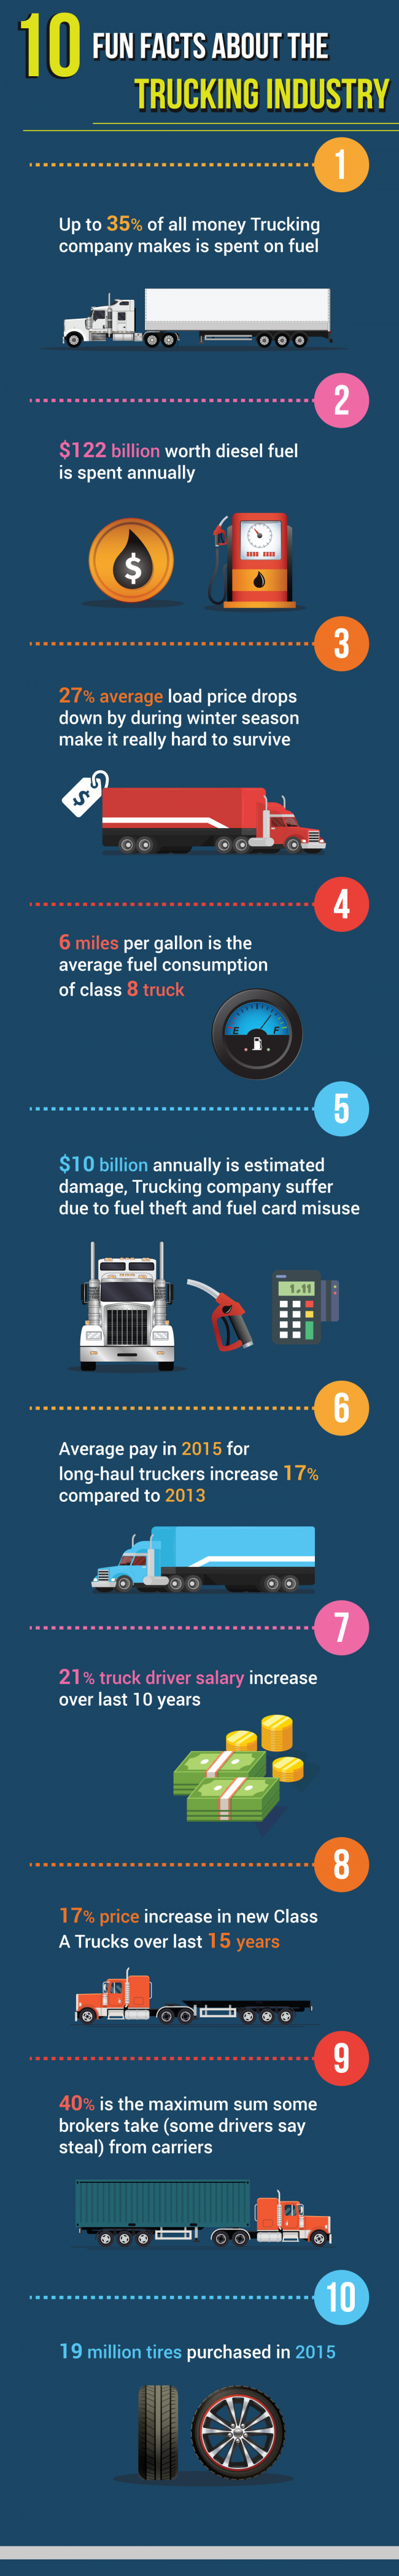 INFOGRAPHIC: 10 Fun Facts About the Trucking Industry